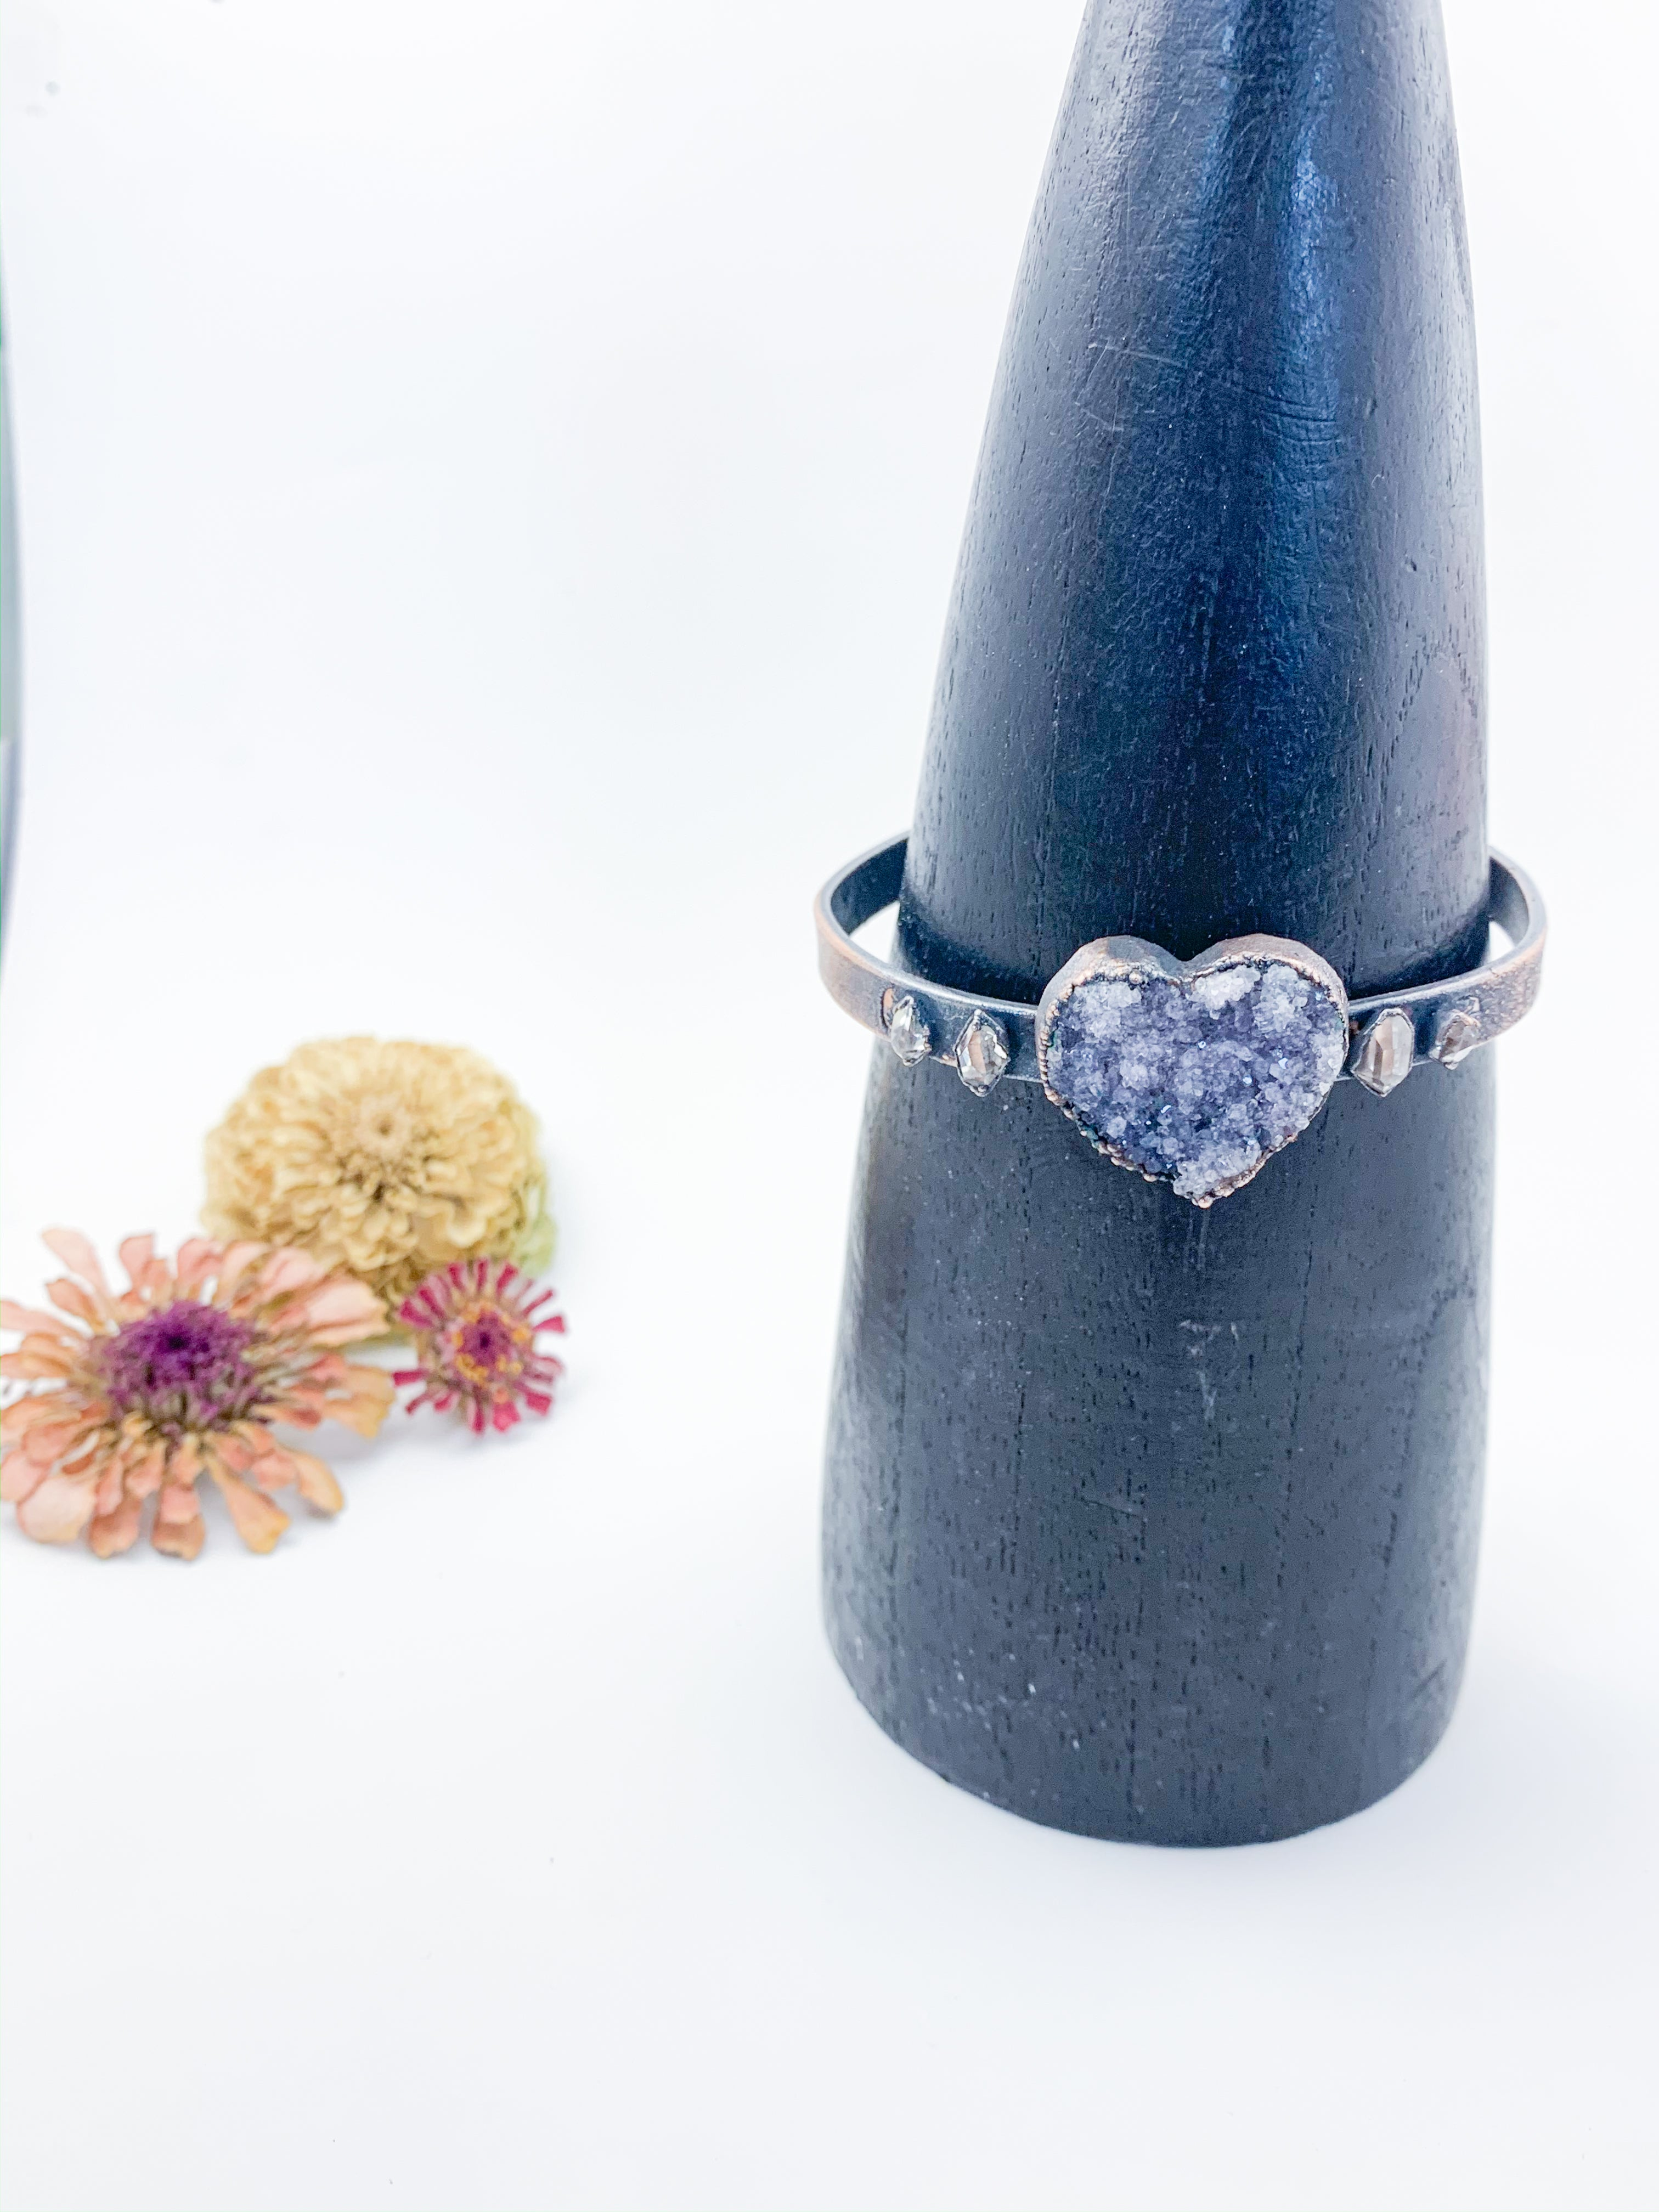 Druzy Amethyst Cuff with Herkimer Diamonds - Allie & Tess